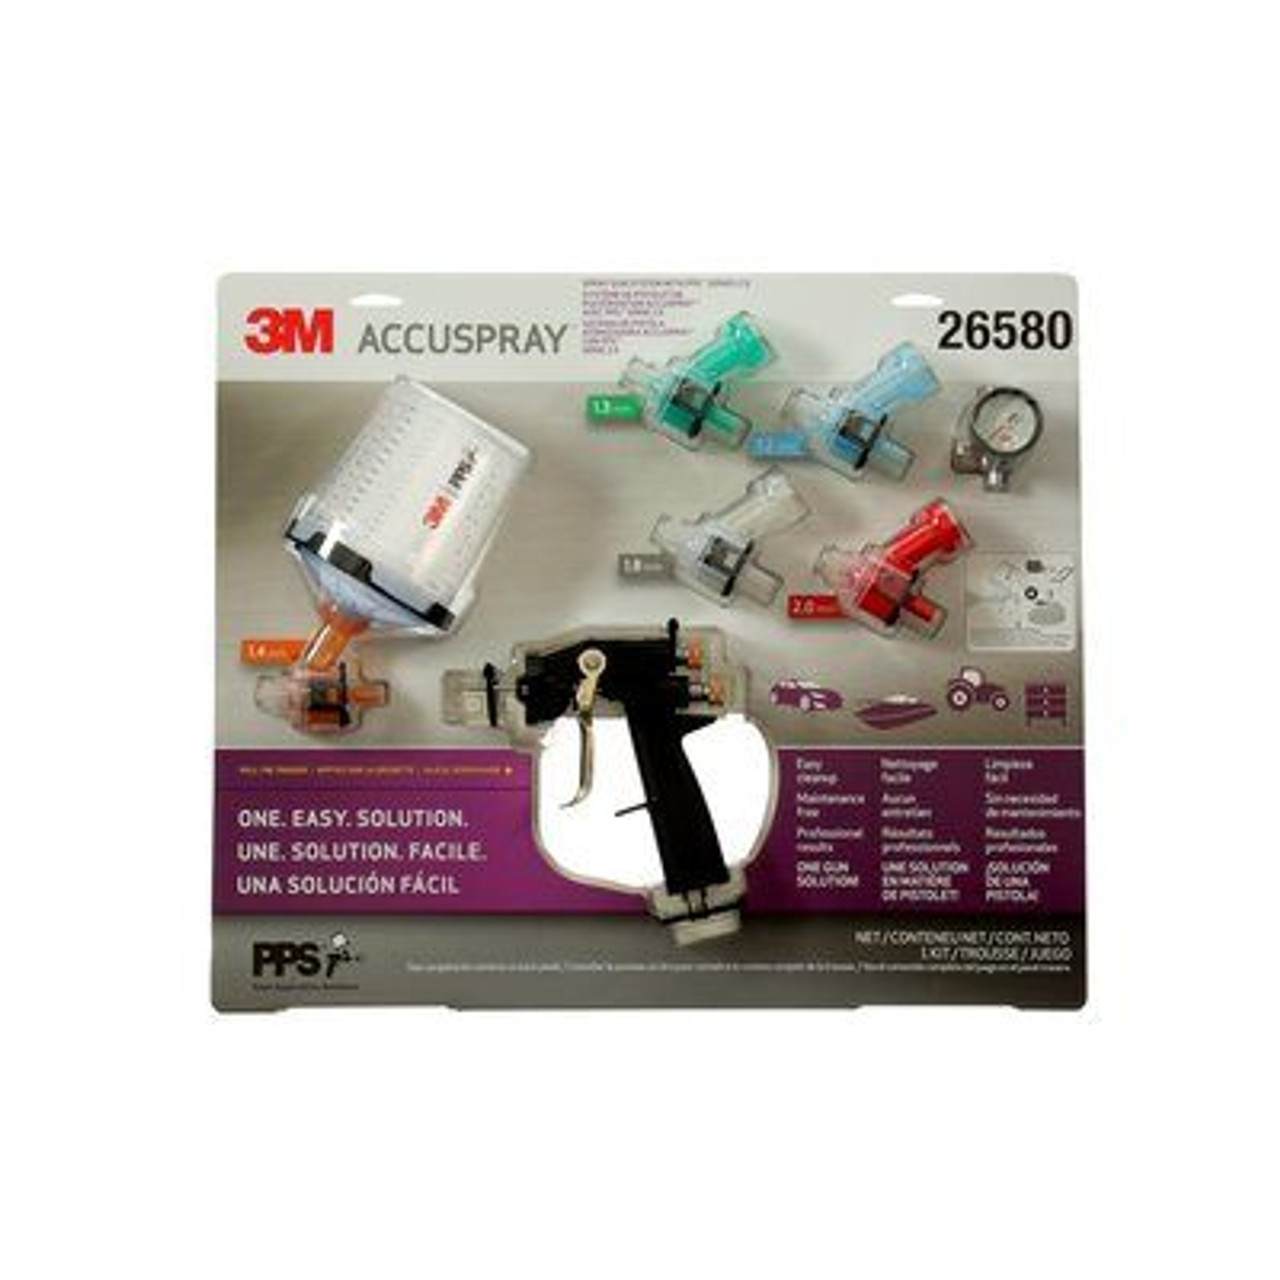 3M™ Accuspray™ ONE Spray Gun System with PPS™ Series 2.0 Spray Cup System, 26580, 2 kits per case